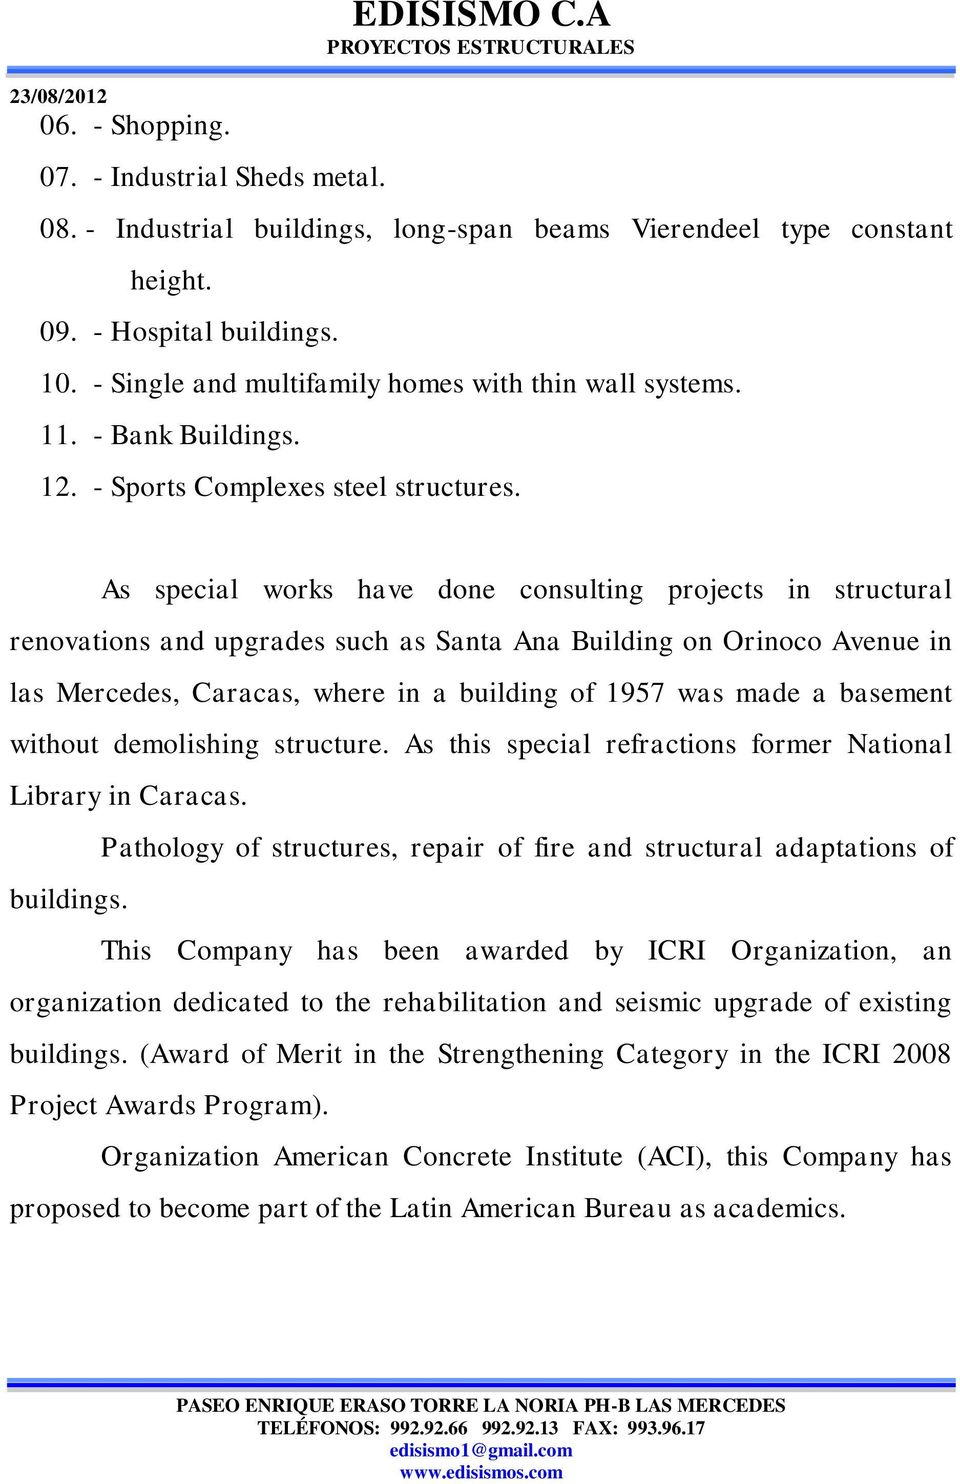 As special works have done consulting projects in structural renovations and upgrades such as Santa Ana Building on Orinoco Avenue in las Mercedes, Caracas, where in a building of 1957 was made a